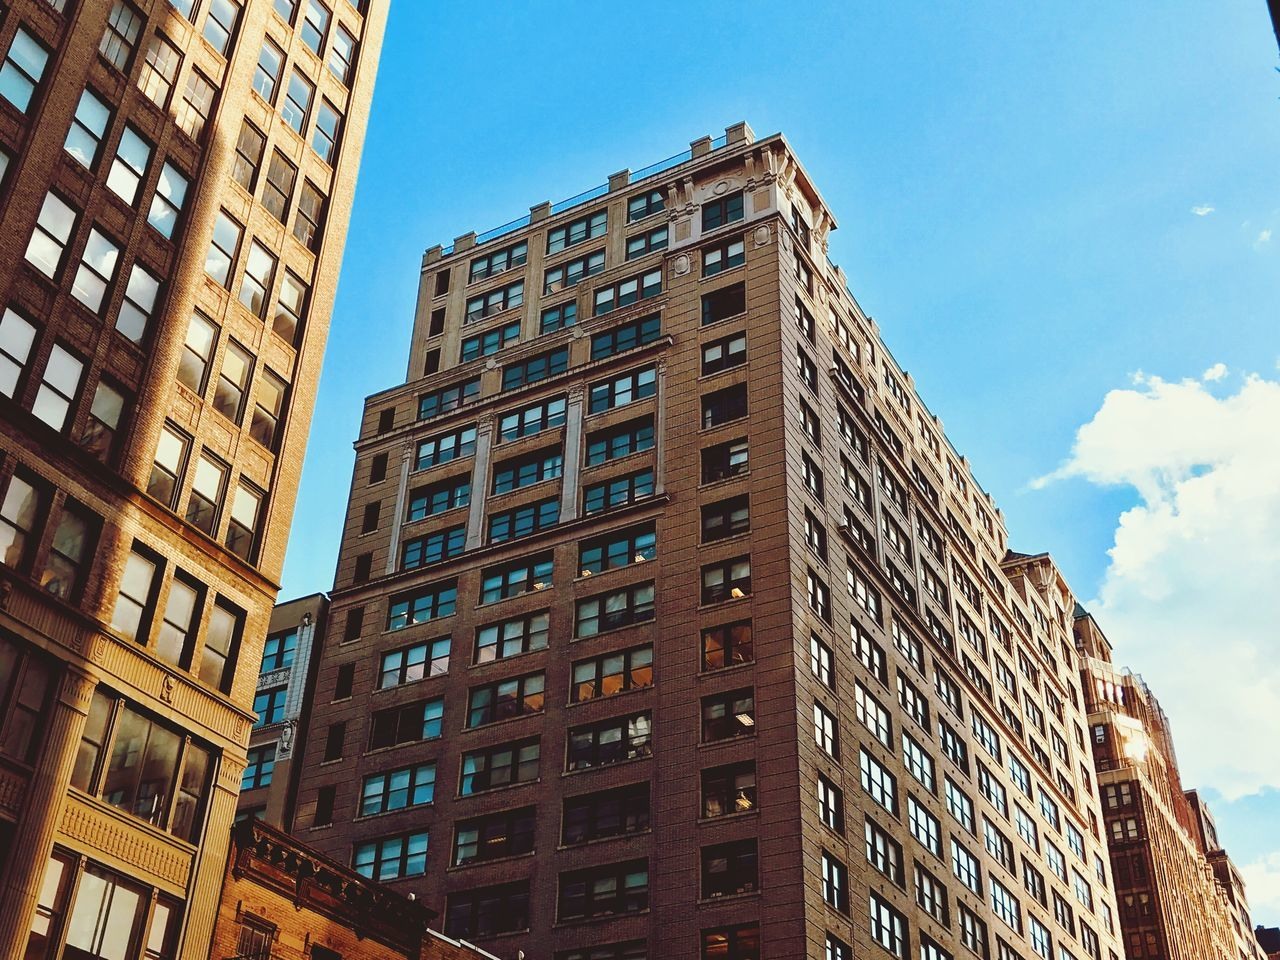 architecture, building exterior, window, low angle view, built structure, day, sky, outdoors, skyscraper, city, no people, modern, apartment